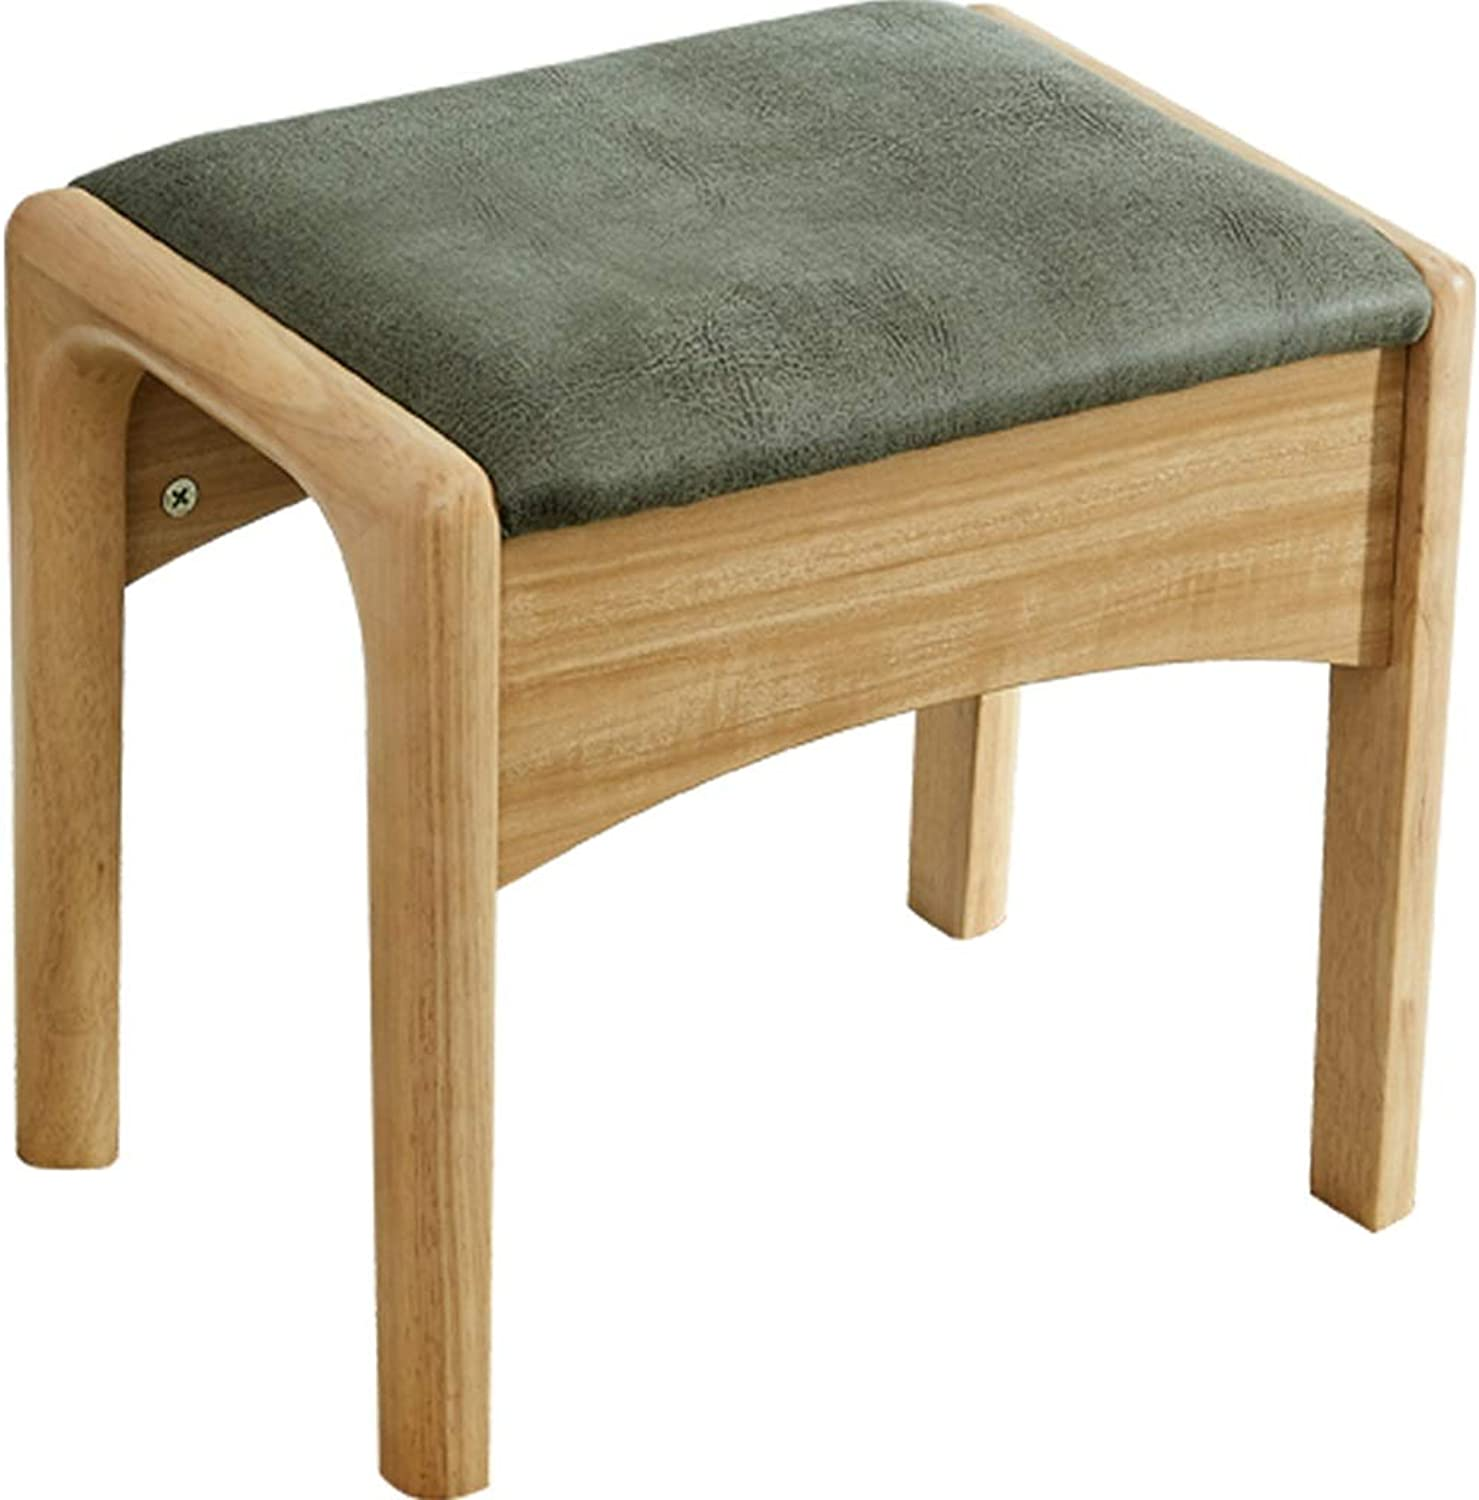 Solid Wood Dressing Stool, Household shoes-Changing Stool, Simple Square Stool, Dressing Stool (color   Green)